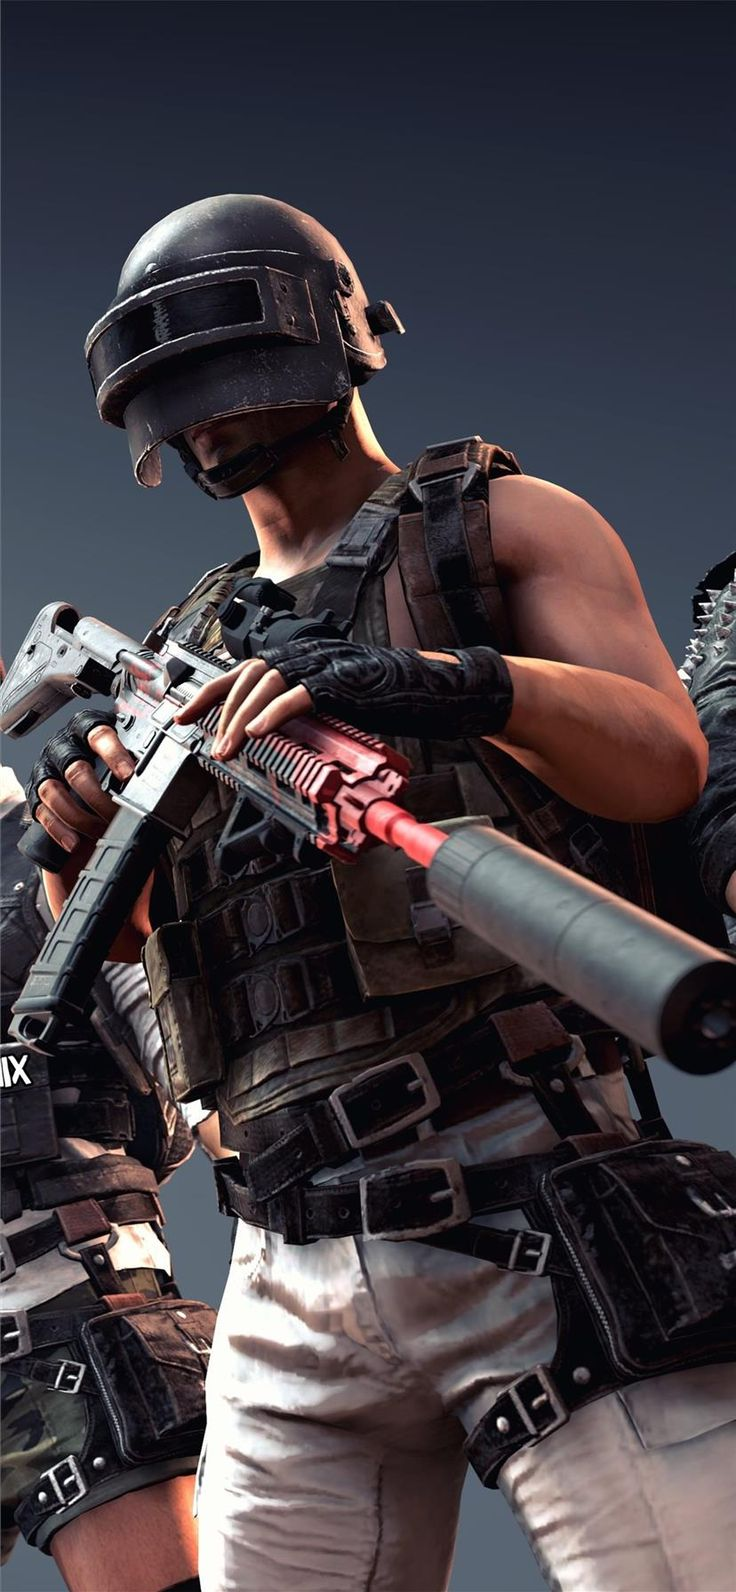 2019 pubg 5k iPhone X Wallpapers Free Download in 2020